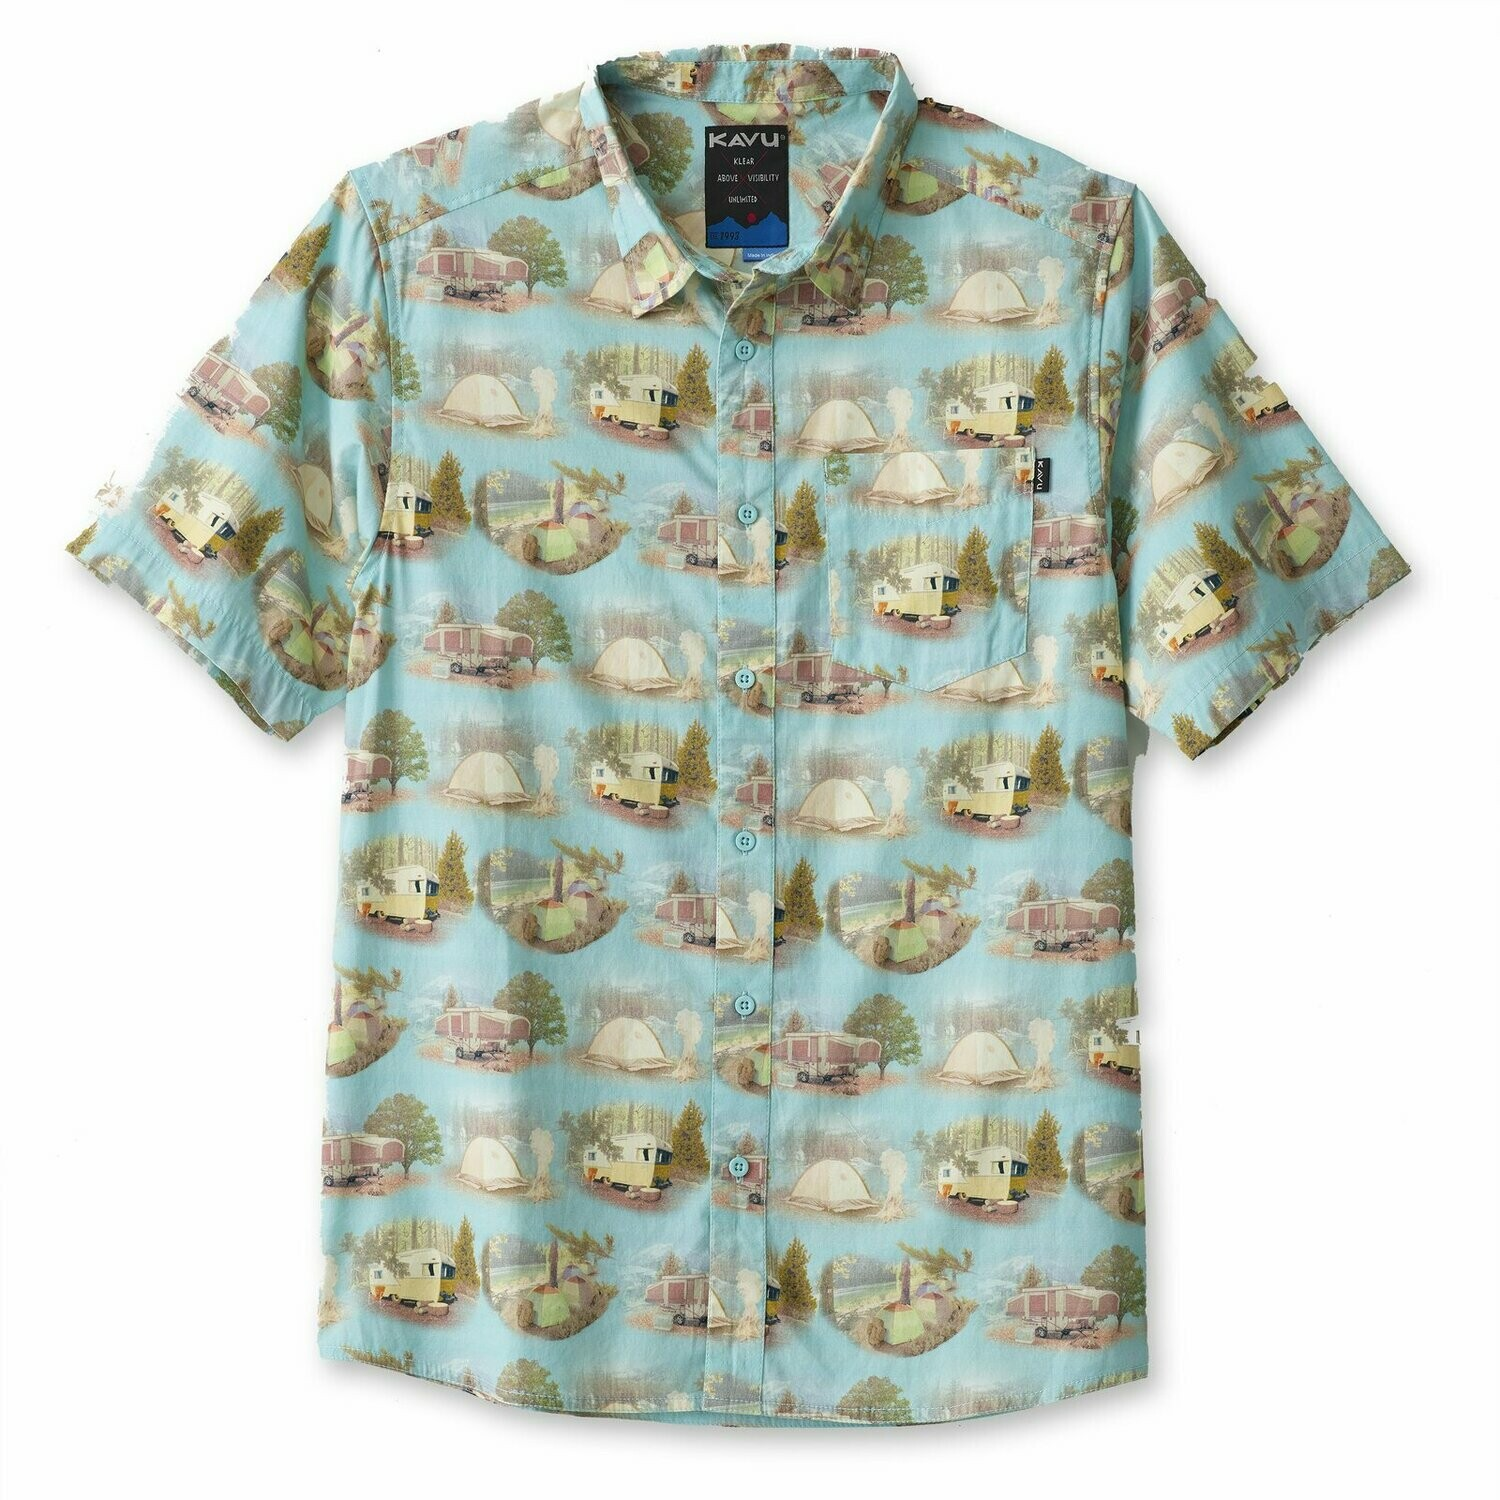 Kavu The Jam Men's Short Sleeve Shirt